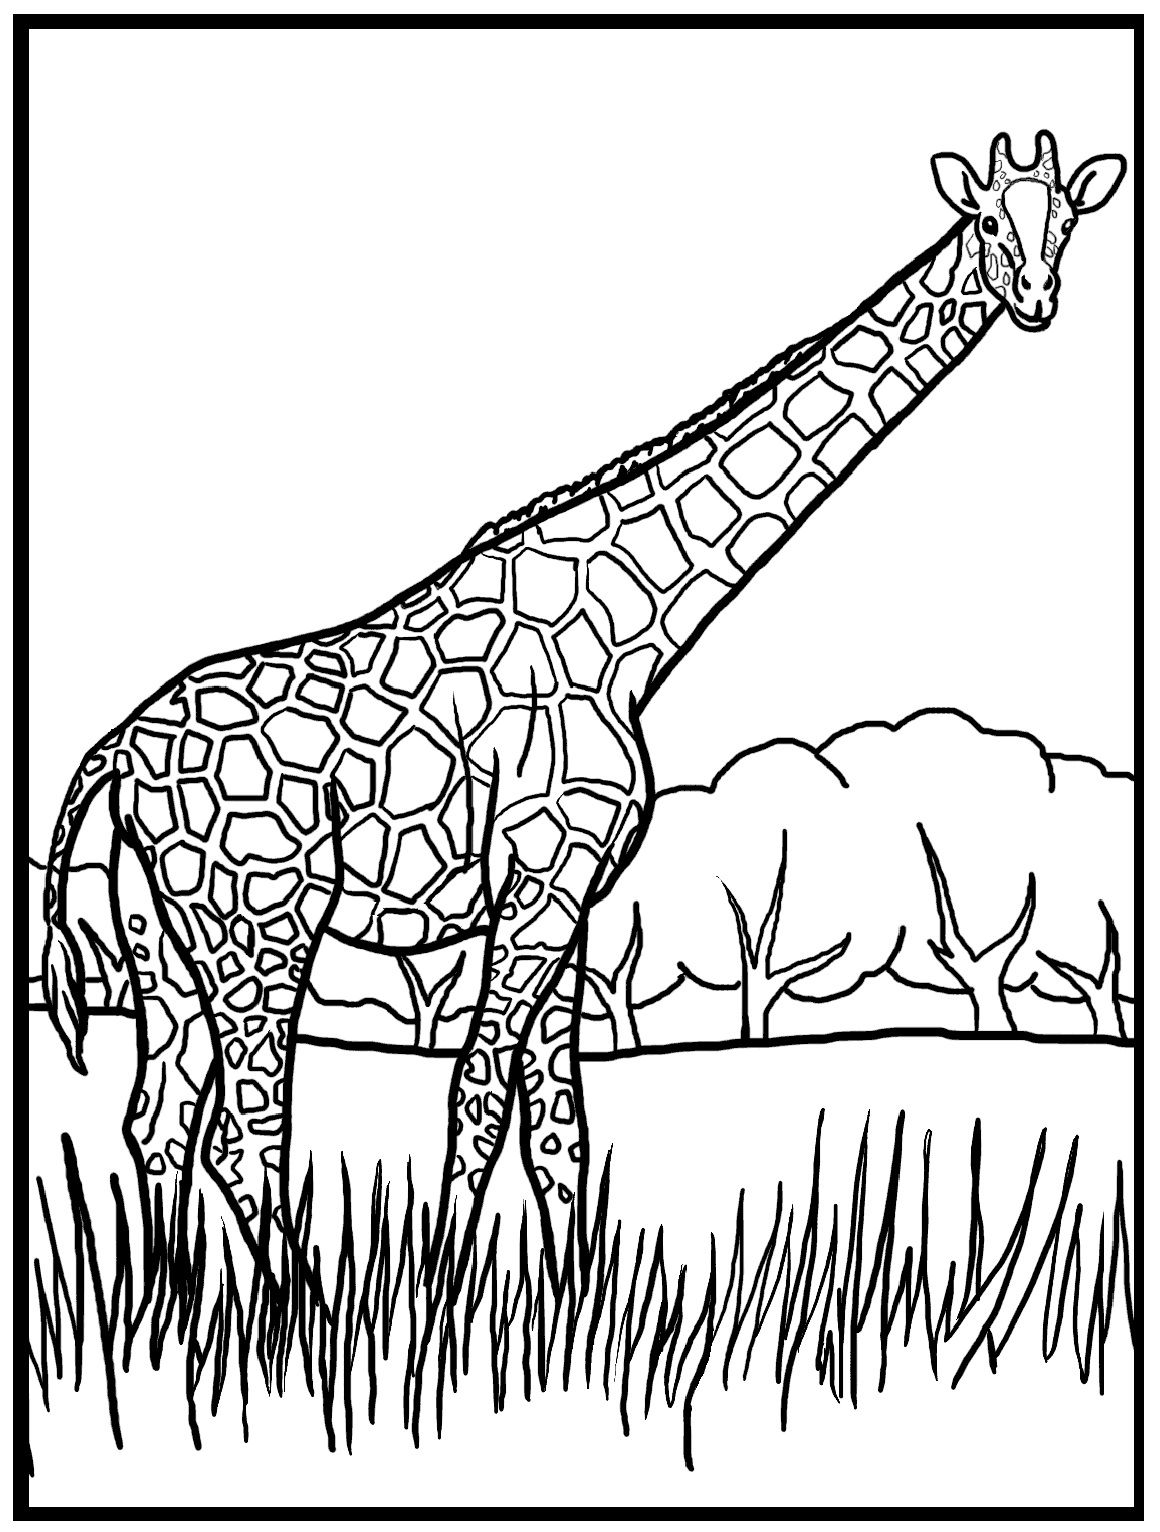 giraff coloring pages Free Printable Giraffe Coloring Pages For Kids | COLORING PAGES  giraff coloring pages